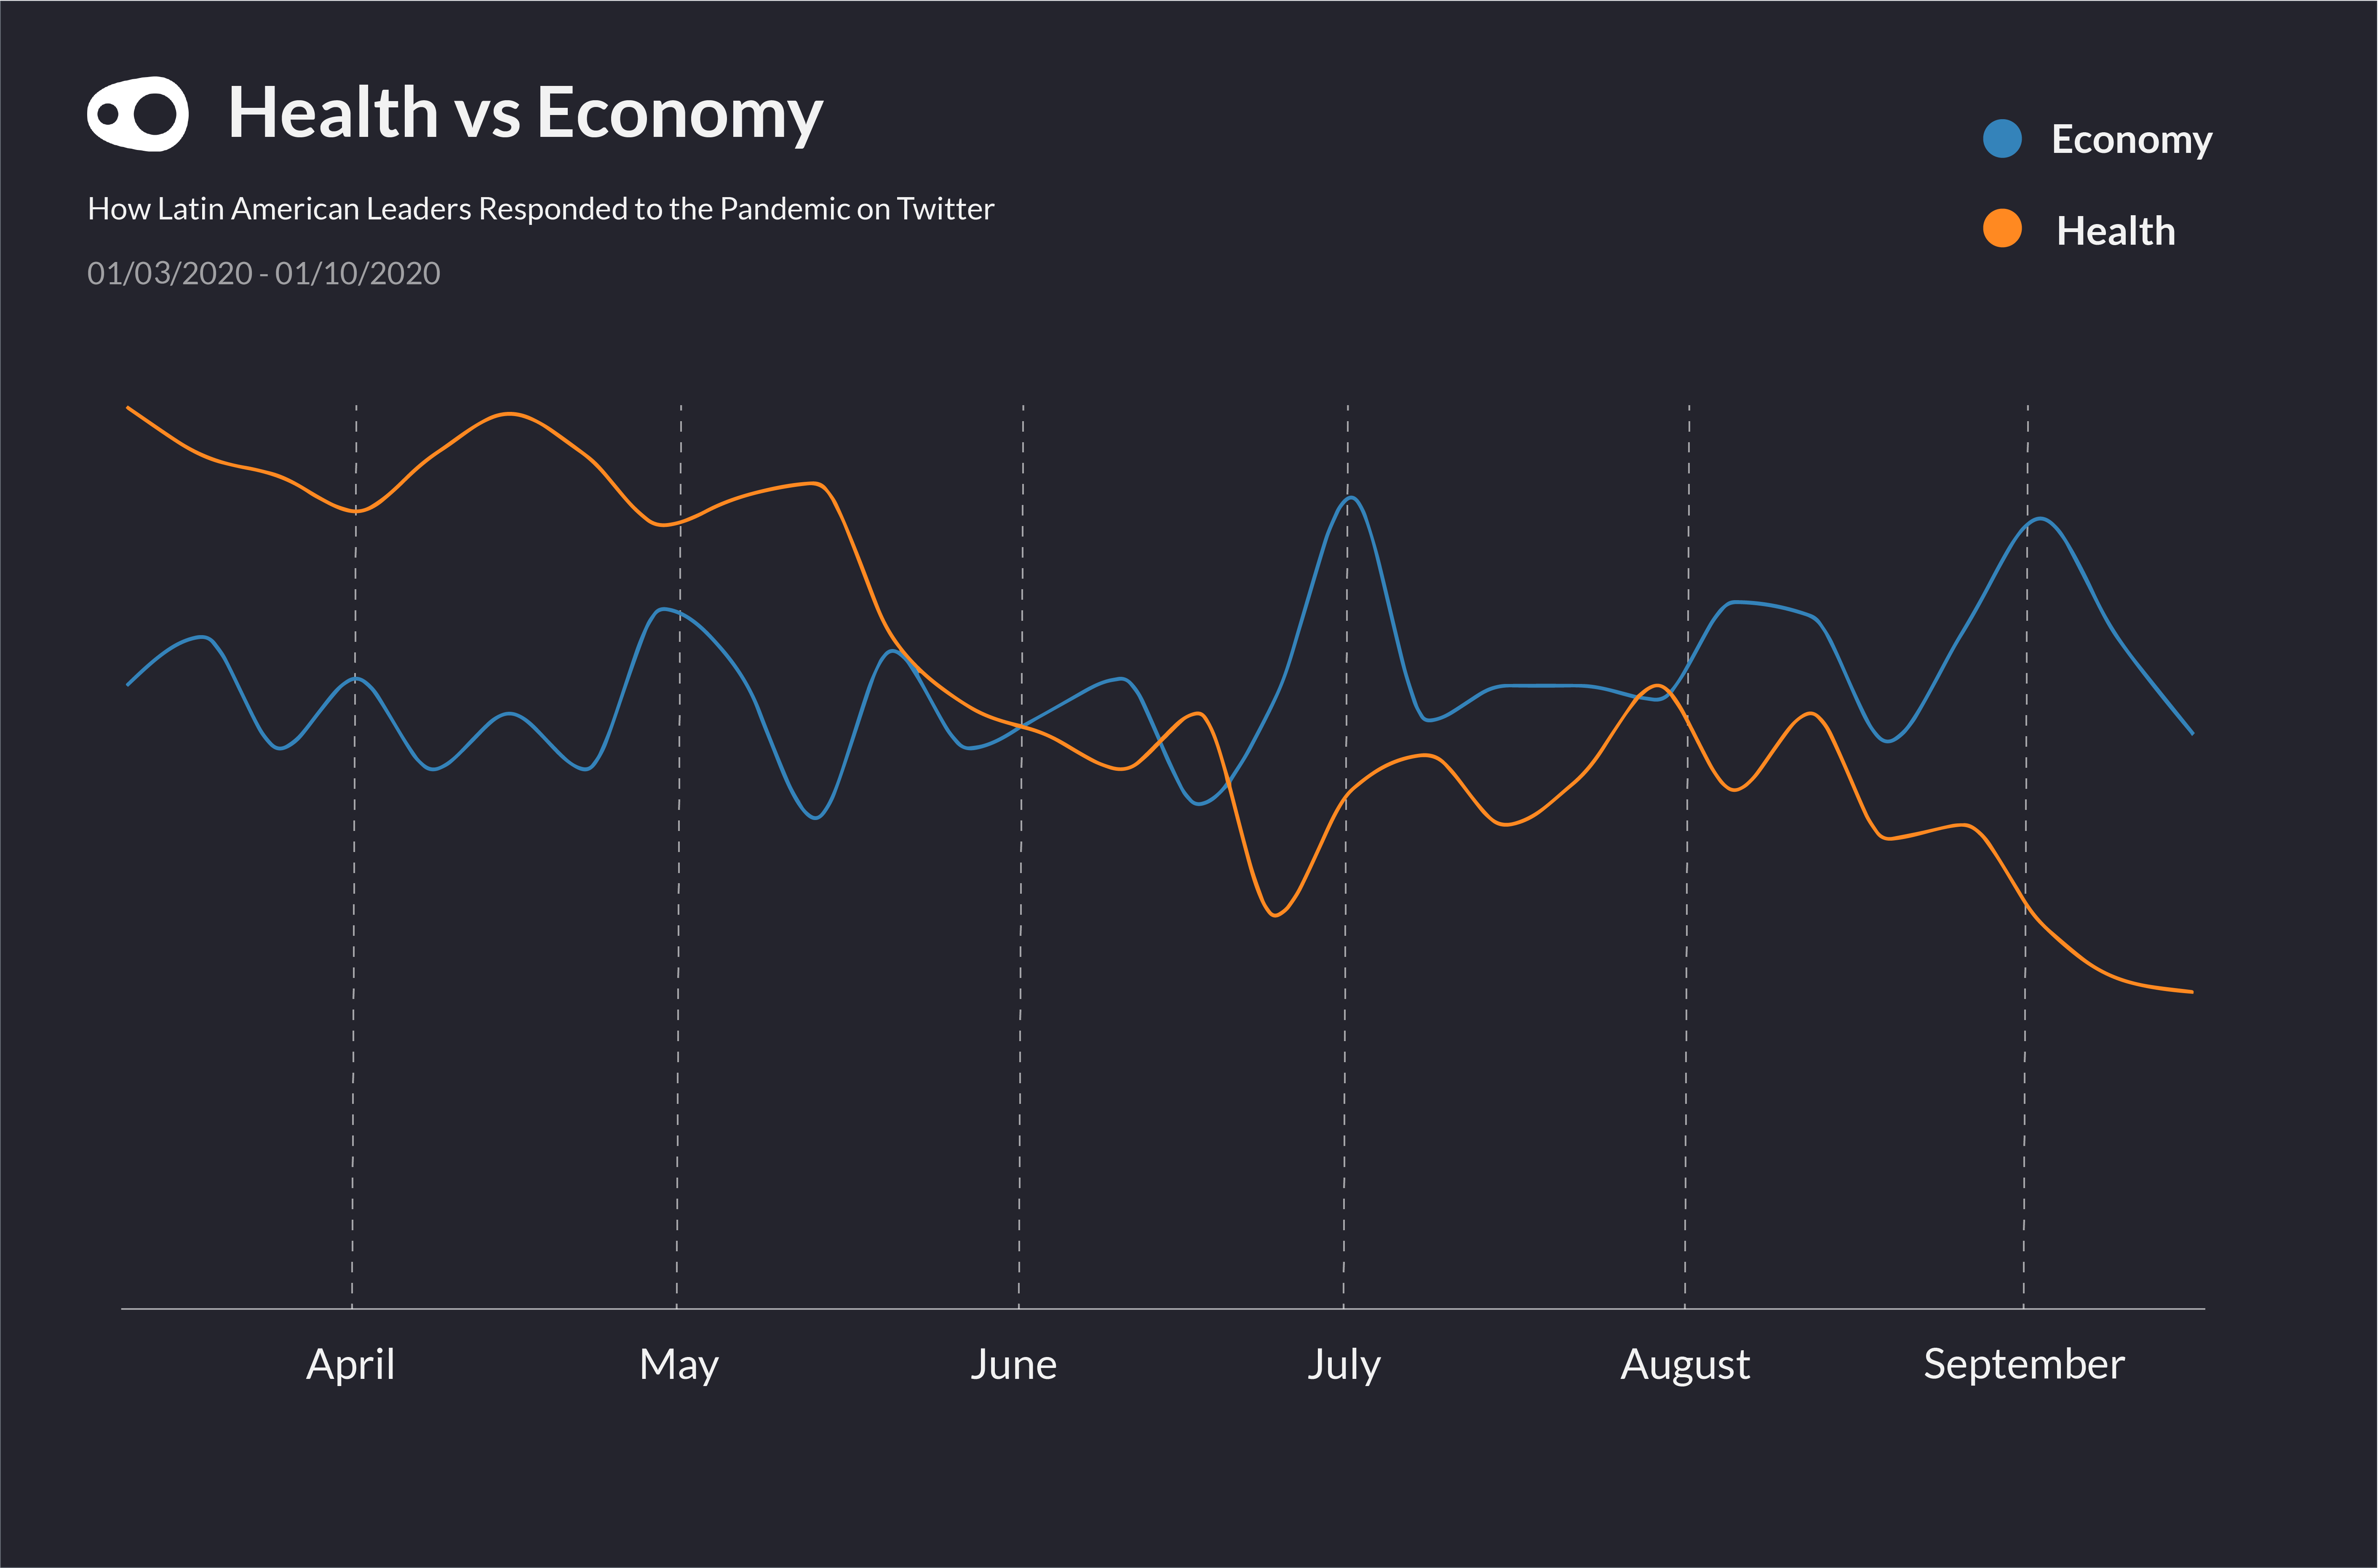 A time-series visualisation showing how Latin American politicians prioritized messages about the economy over public health - just as the COVID-19 pandemic worsened in the region.